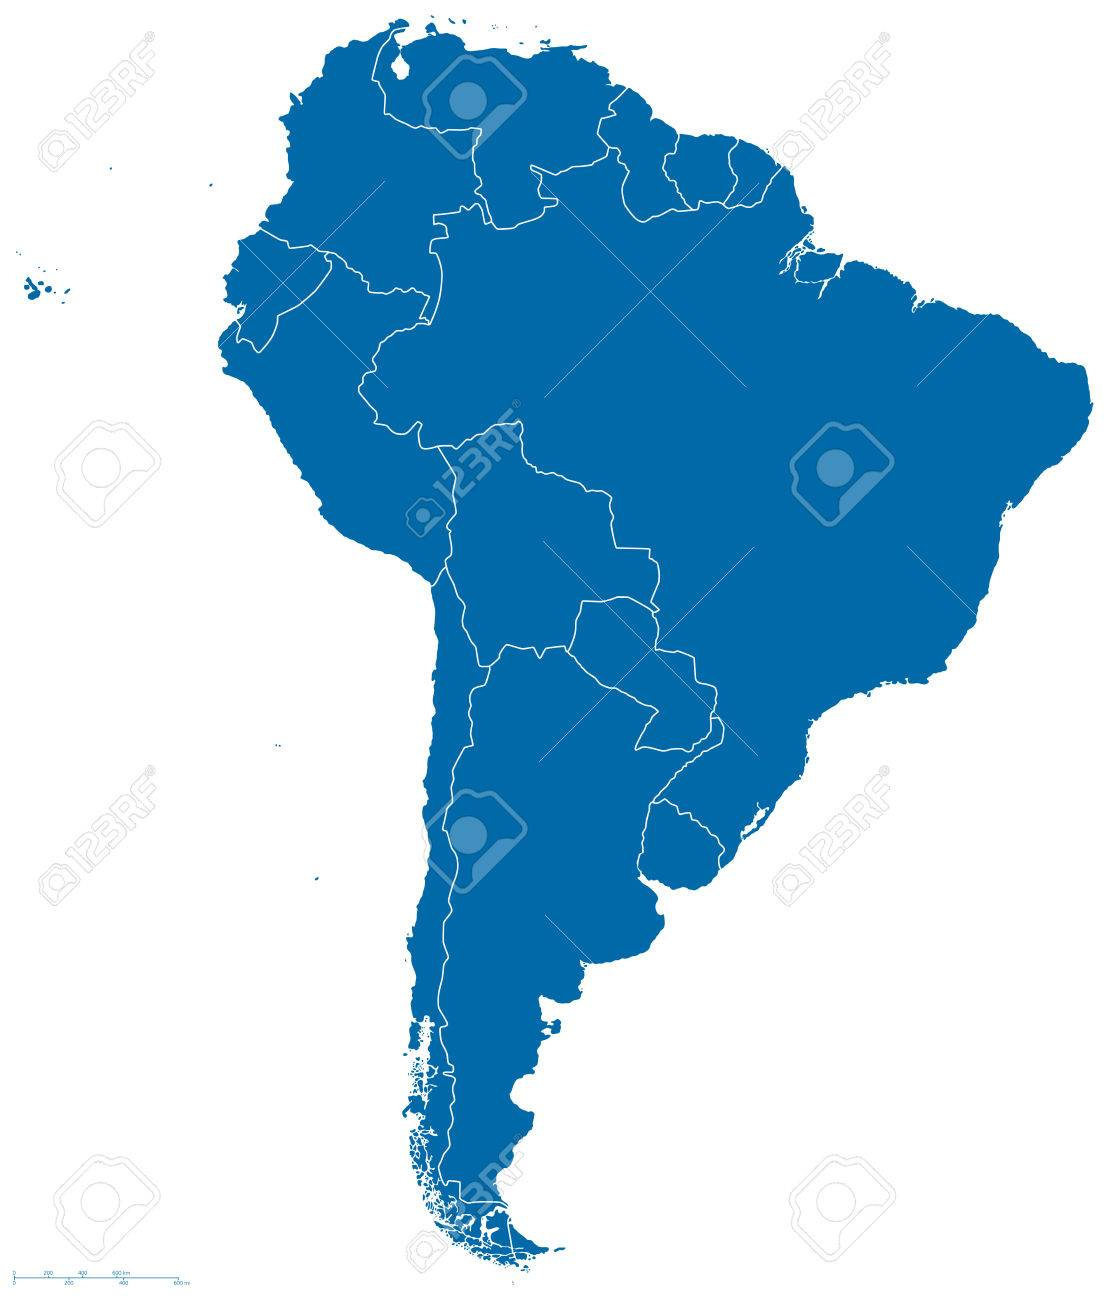 Political map of South America with all